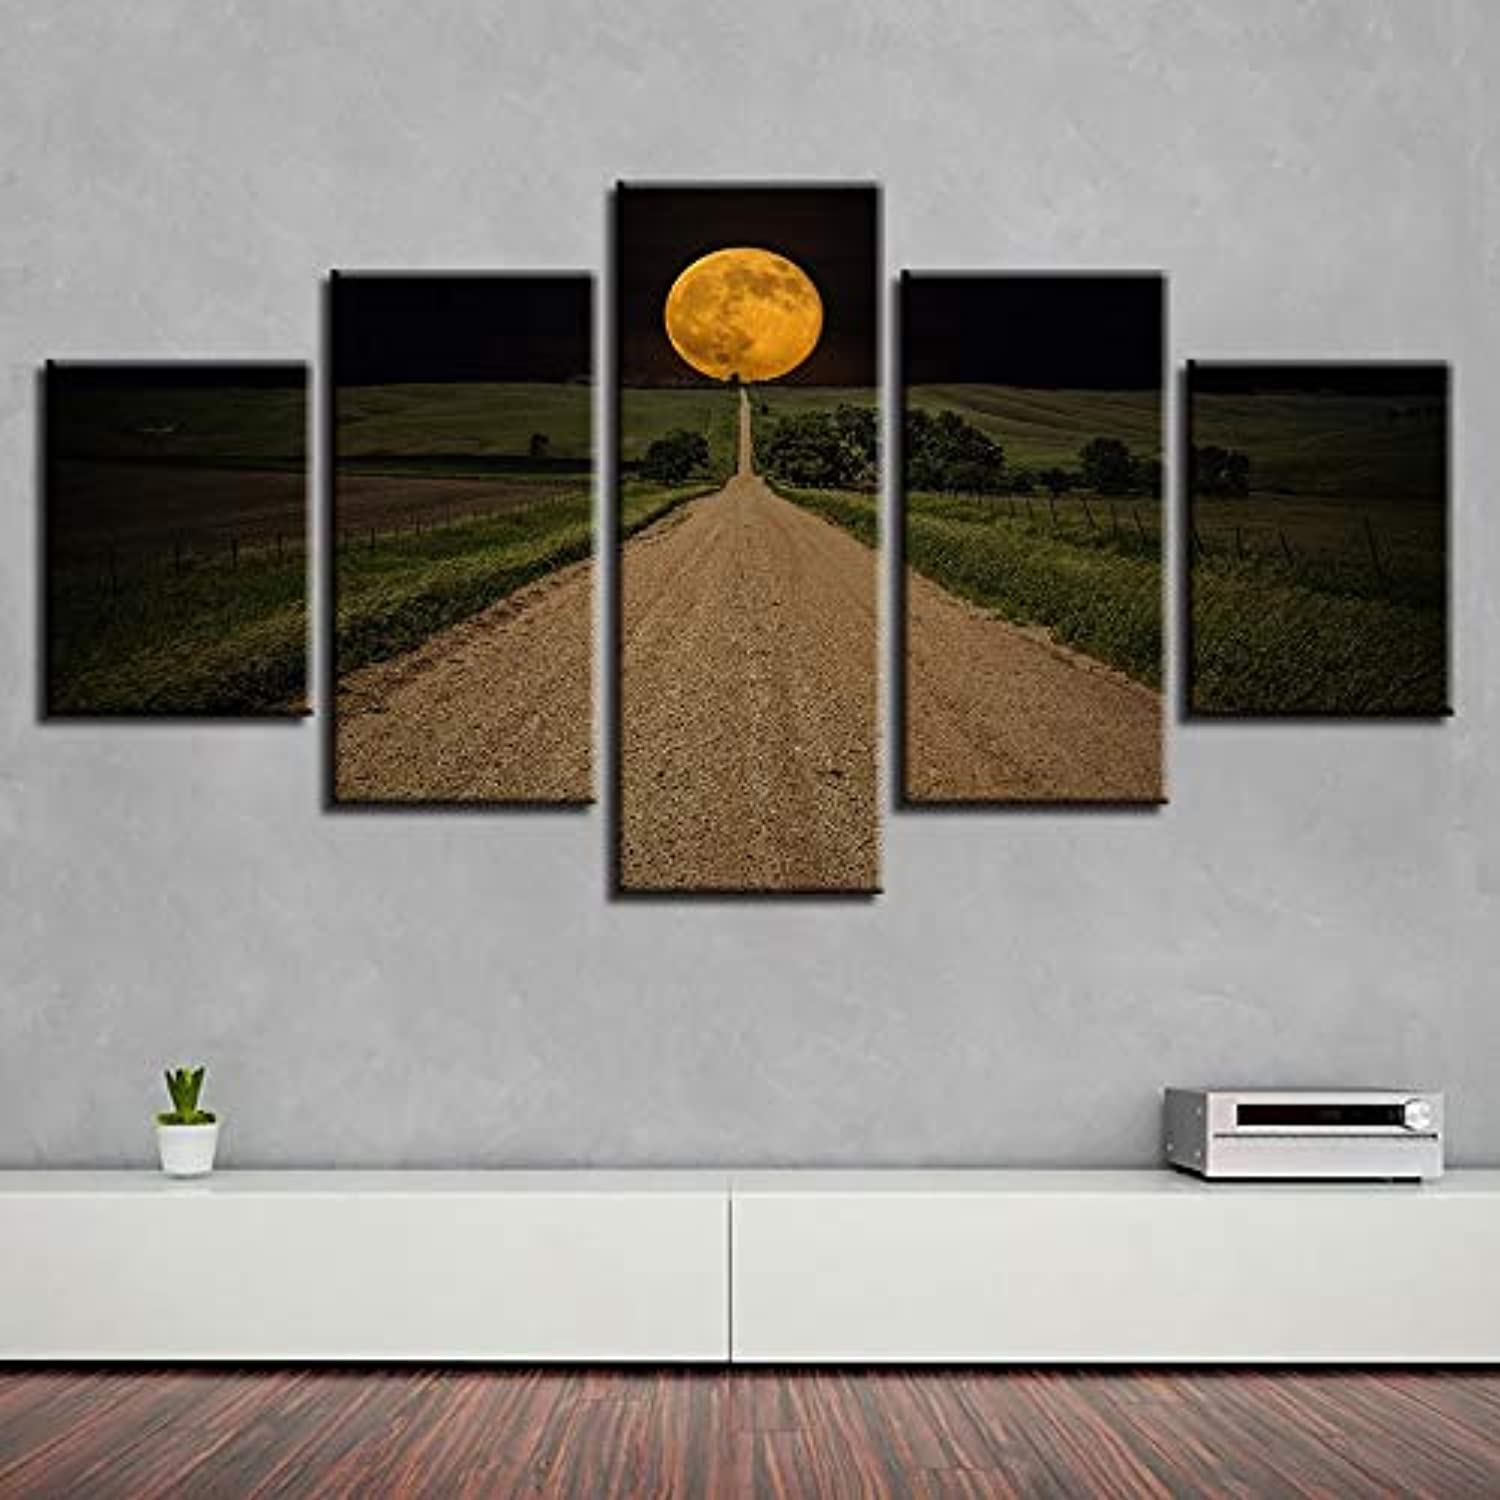 Oil Painting Home Decorative Modular 5 Panel Landscape HD Canvas Photo Framework Wall Art Prints Poster for Living Room